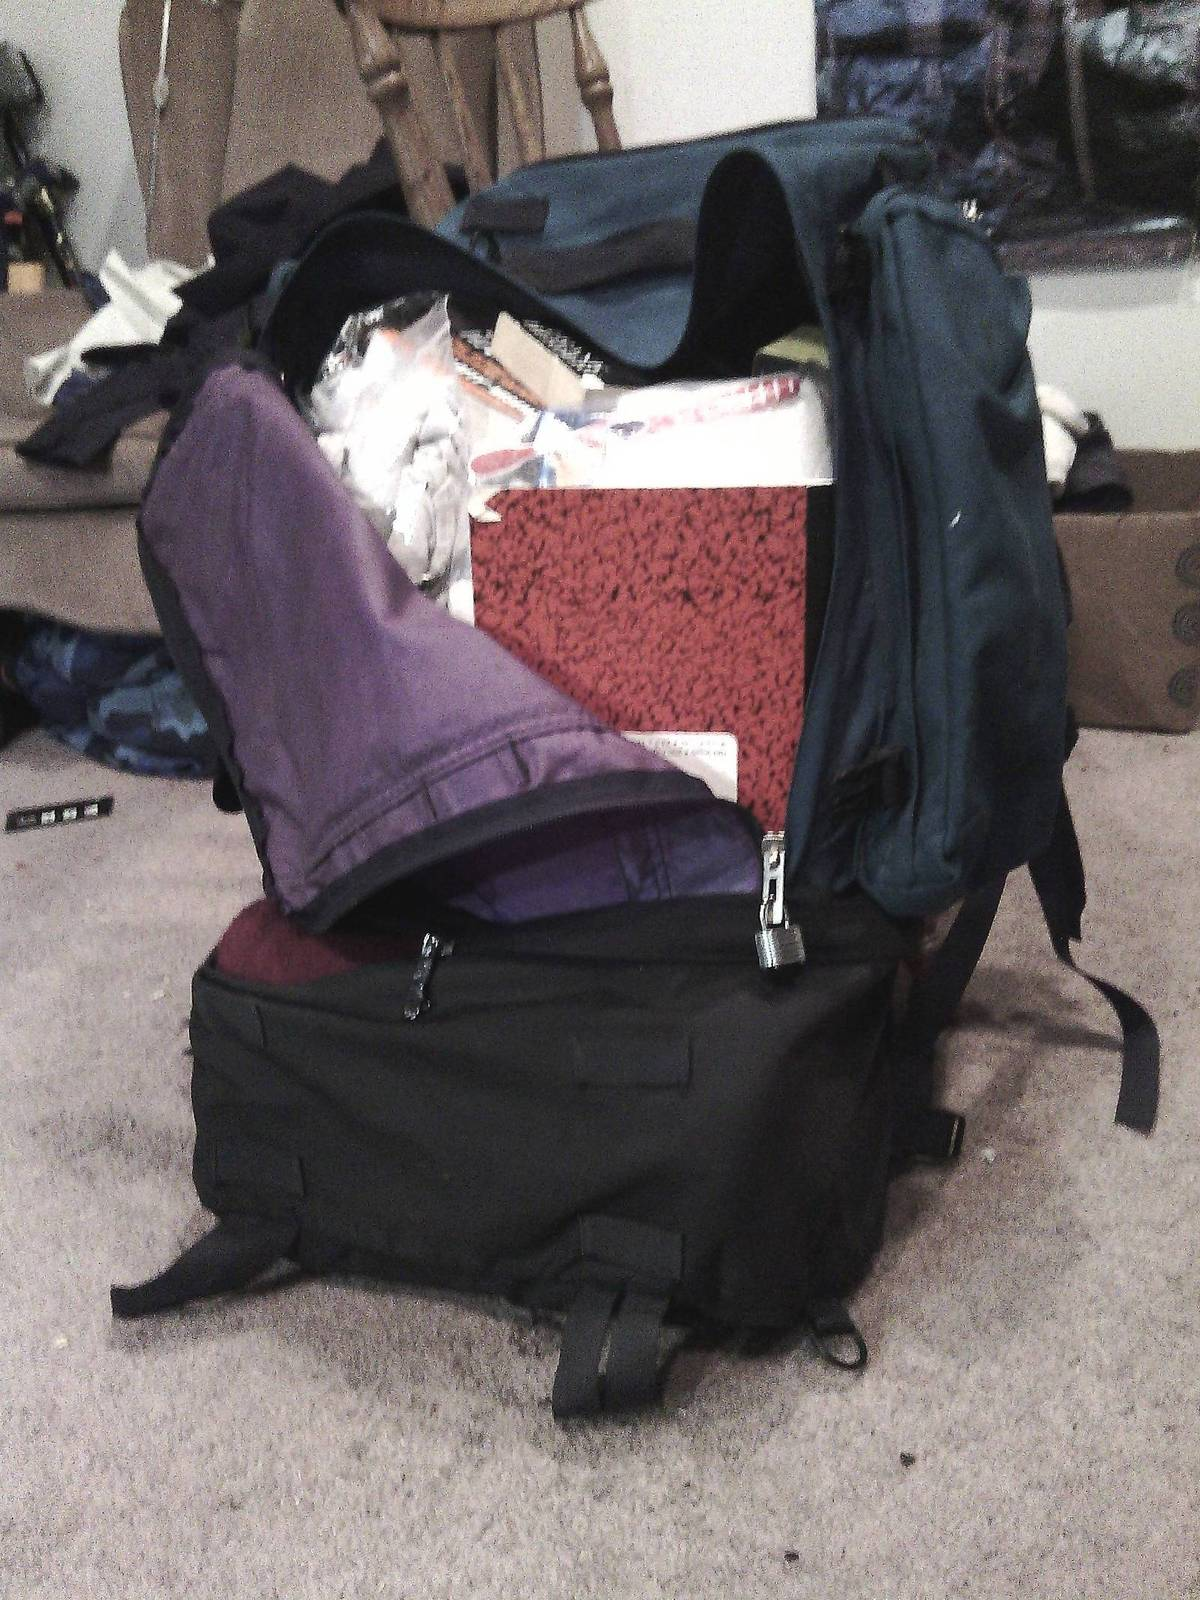 vropbfo-jpg.22863_Early packing phase list - What to add, what to take away?_General Gear Discussion_Squat the Planet_11:30 PM